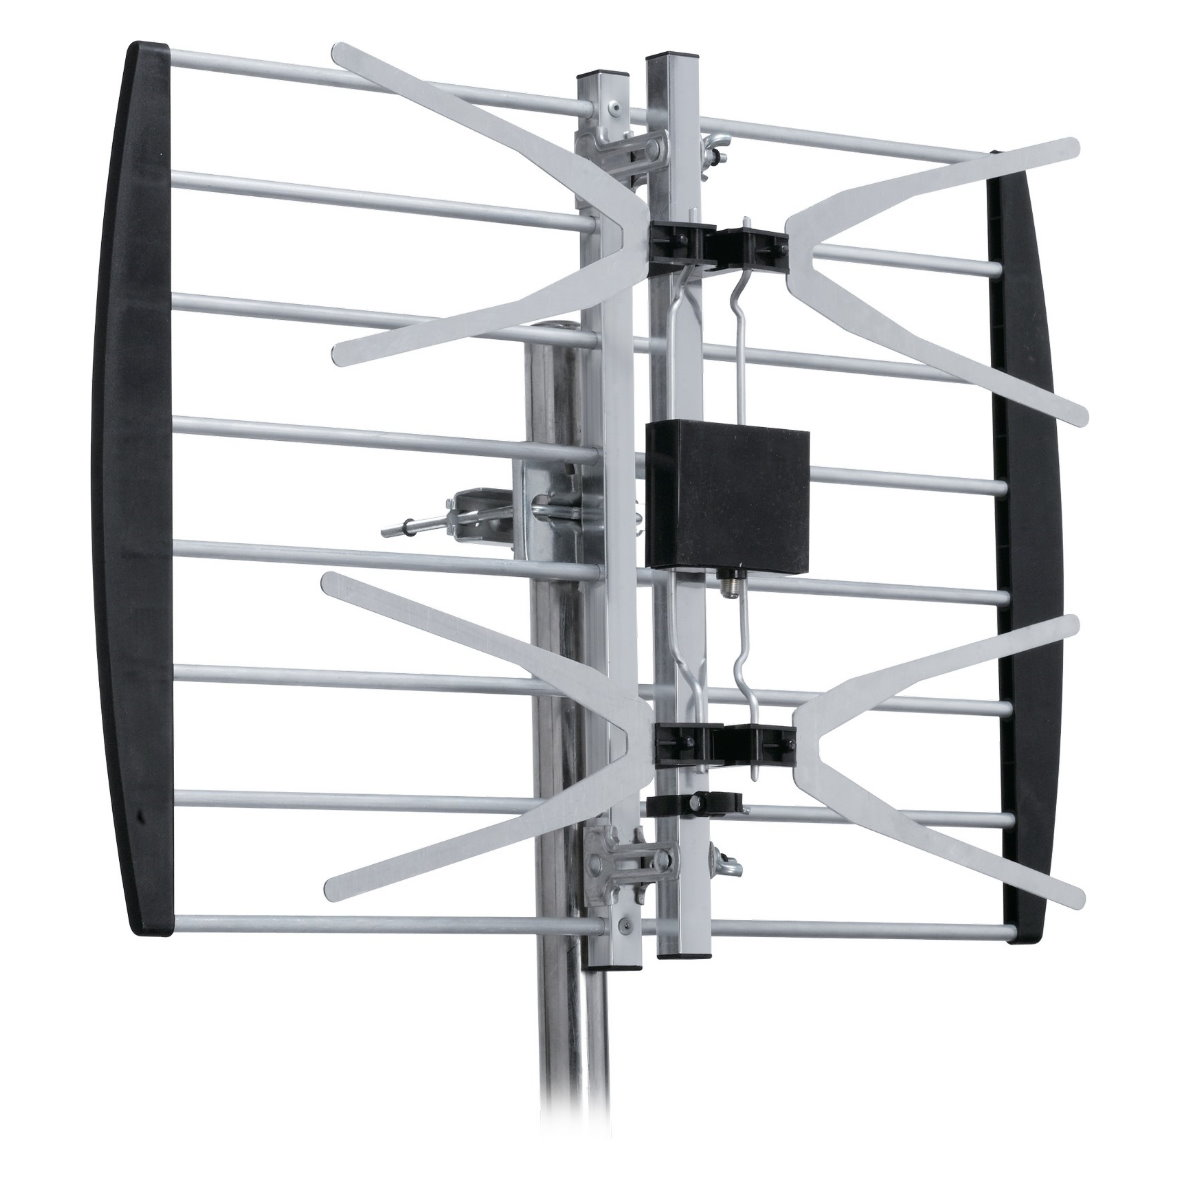 Maximum dvb t antenne amplificateur int rieur ext rieur for Antenne interieur tnt